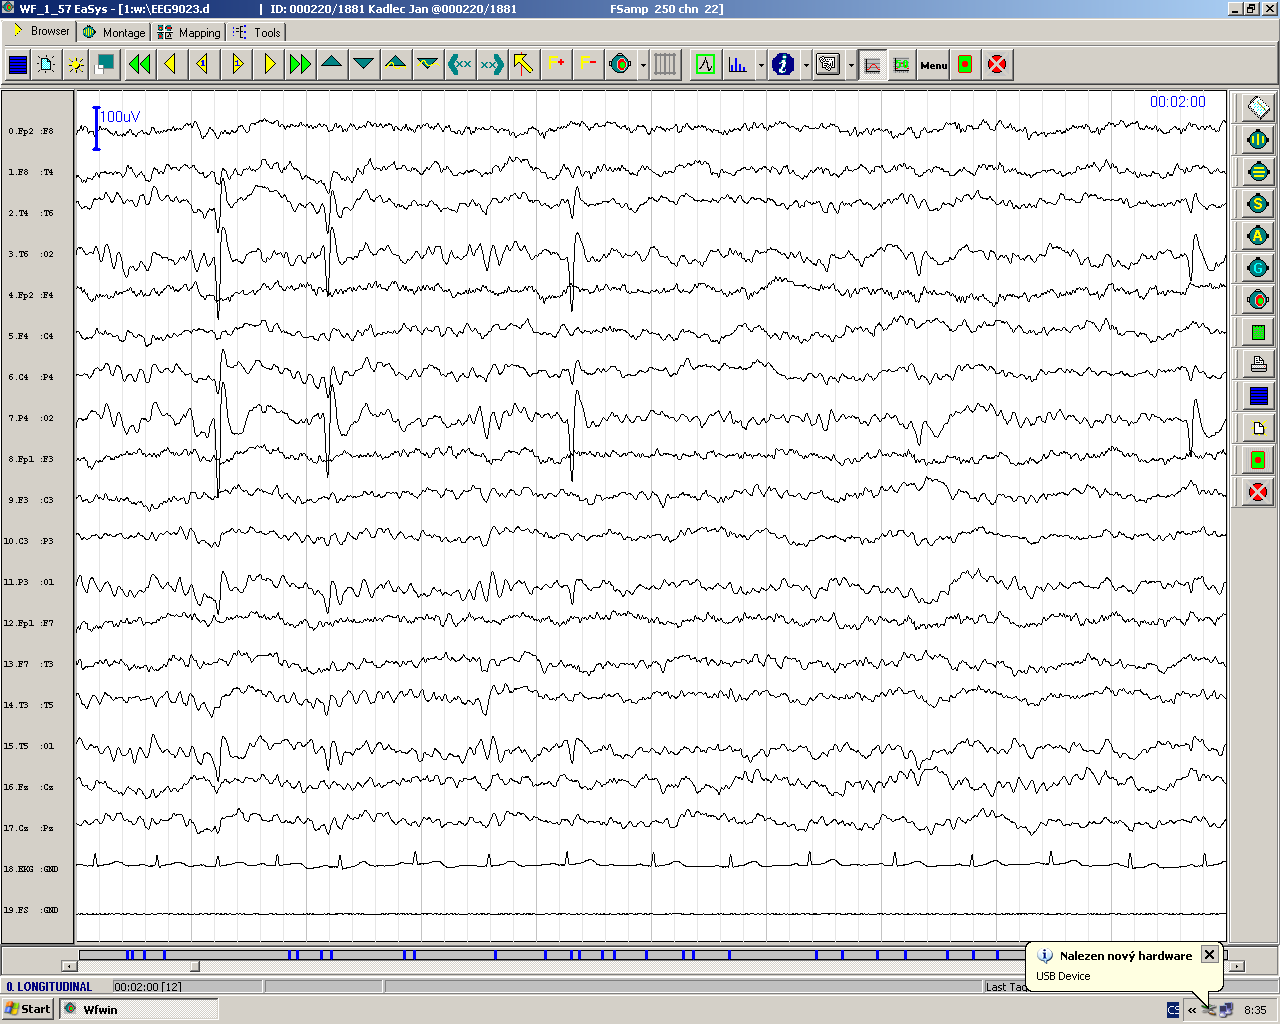 EEG recording of electric activity of the brain Focal or generalized epileptiform discharges